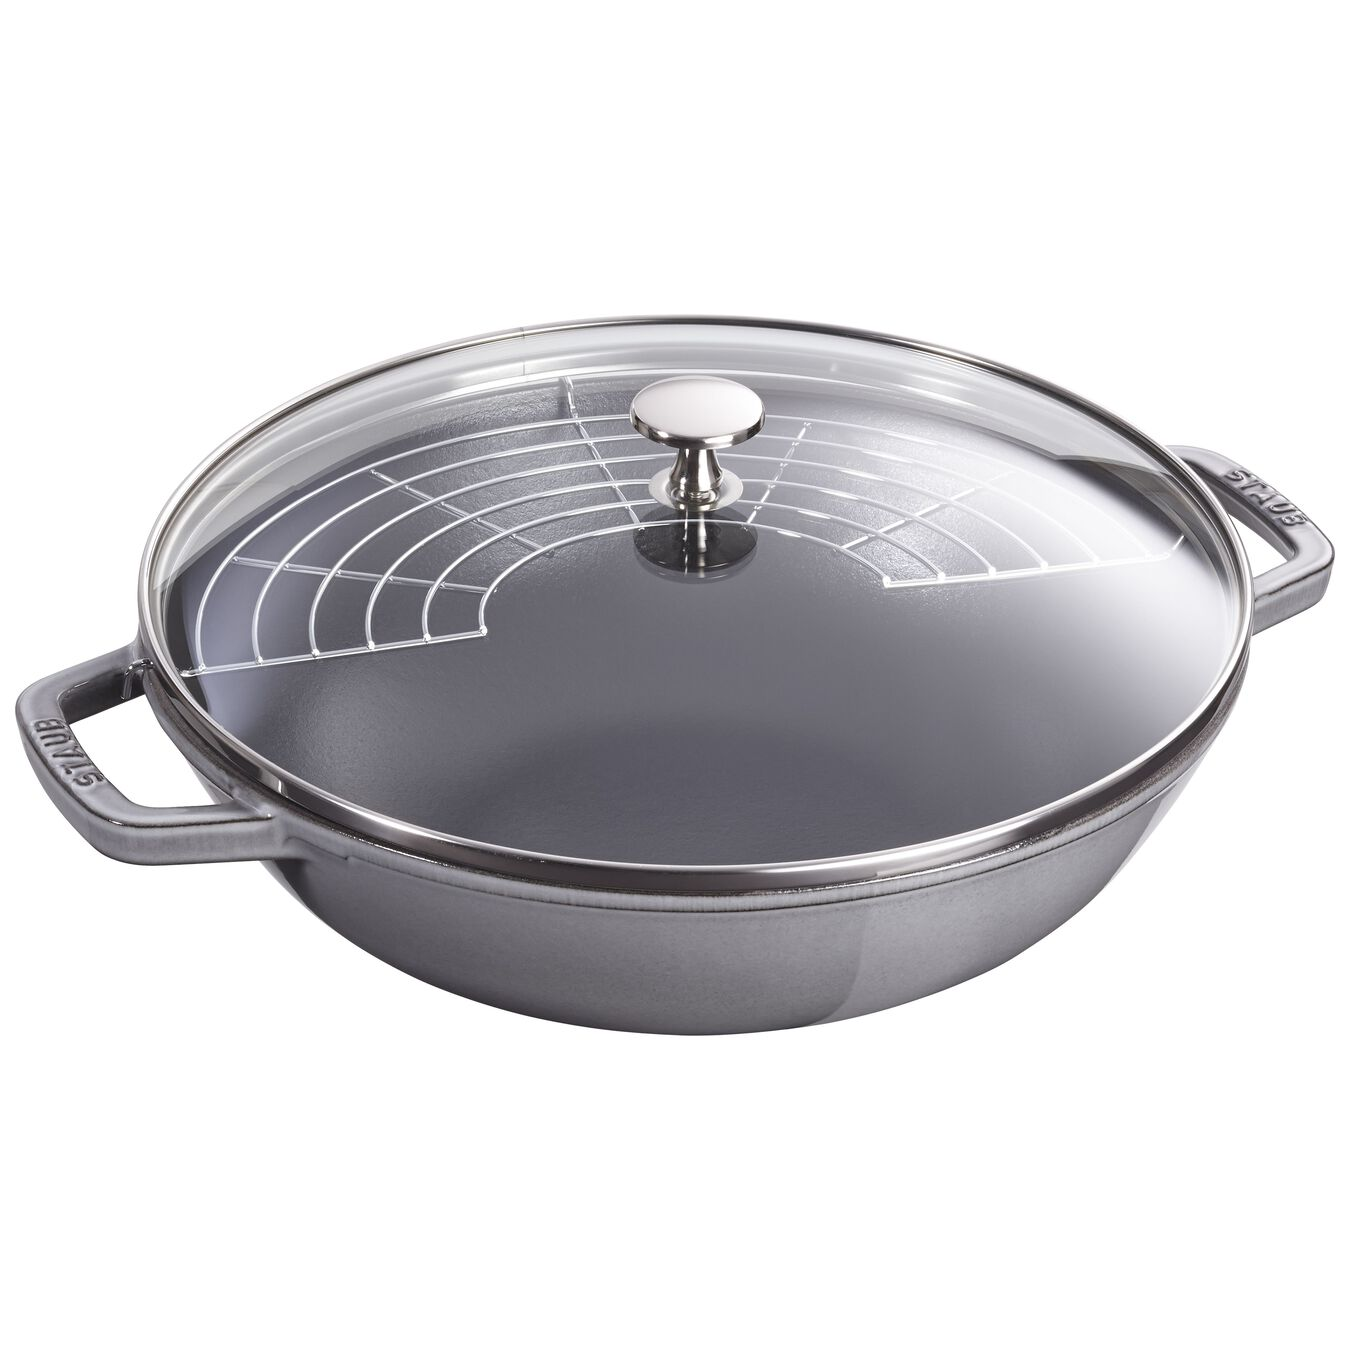 12-inch, Wok with glass lid, graphite grey - Visual Imperfections,,large 2